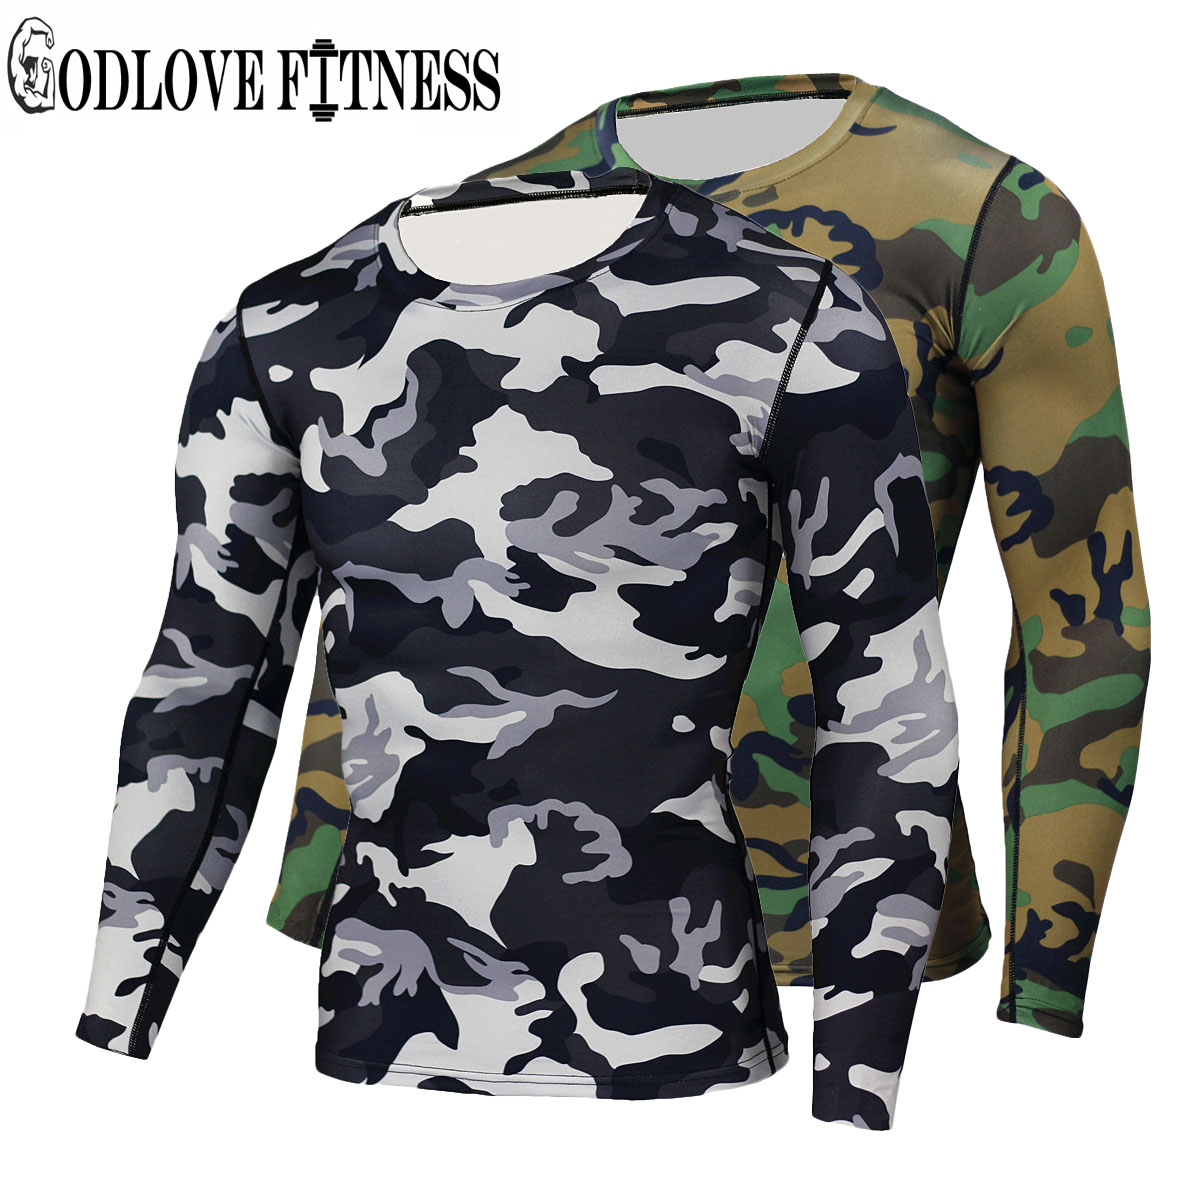 Kemeja Pria Baseball New York Soft Dry Fit Abu Daftar Harga Eiger Riding Dayton Ol Shirt Dark Grey S High Quality Camouflage Military Compression T Tights Fitness Men Quick Camo Long Sleeve